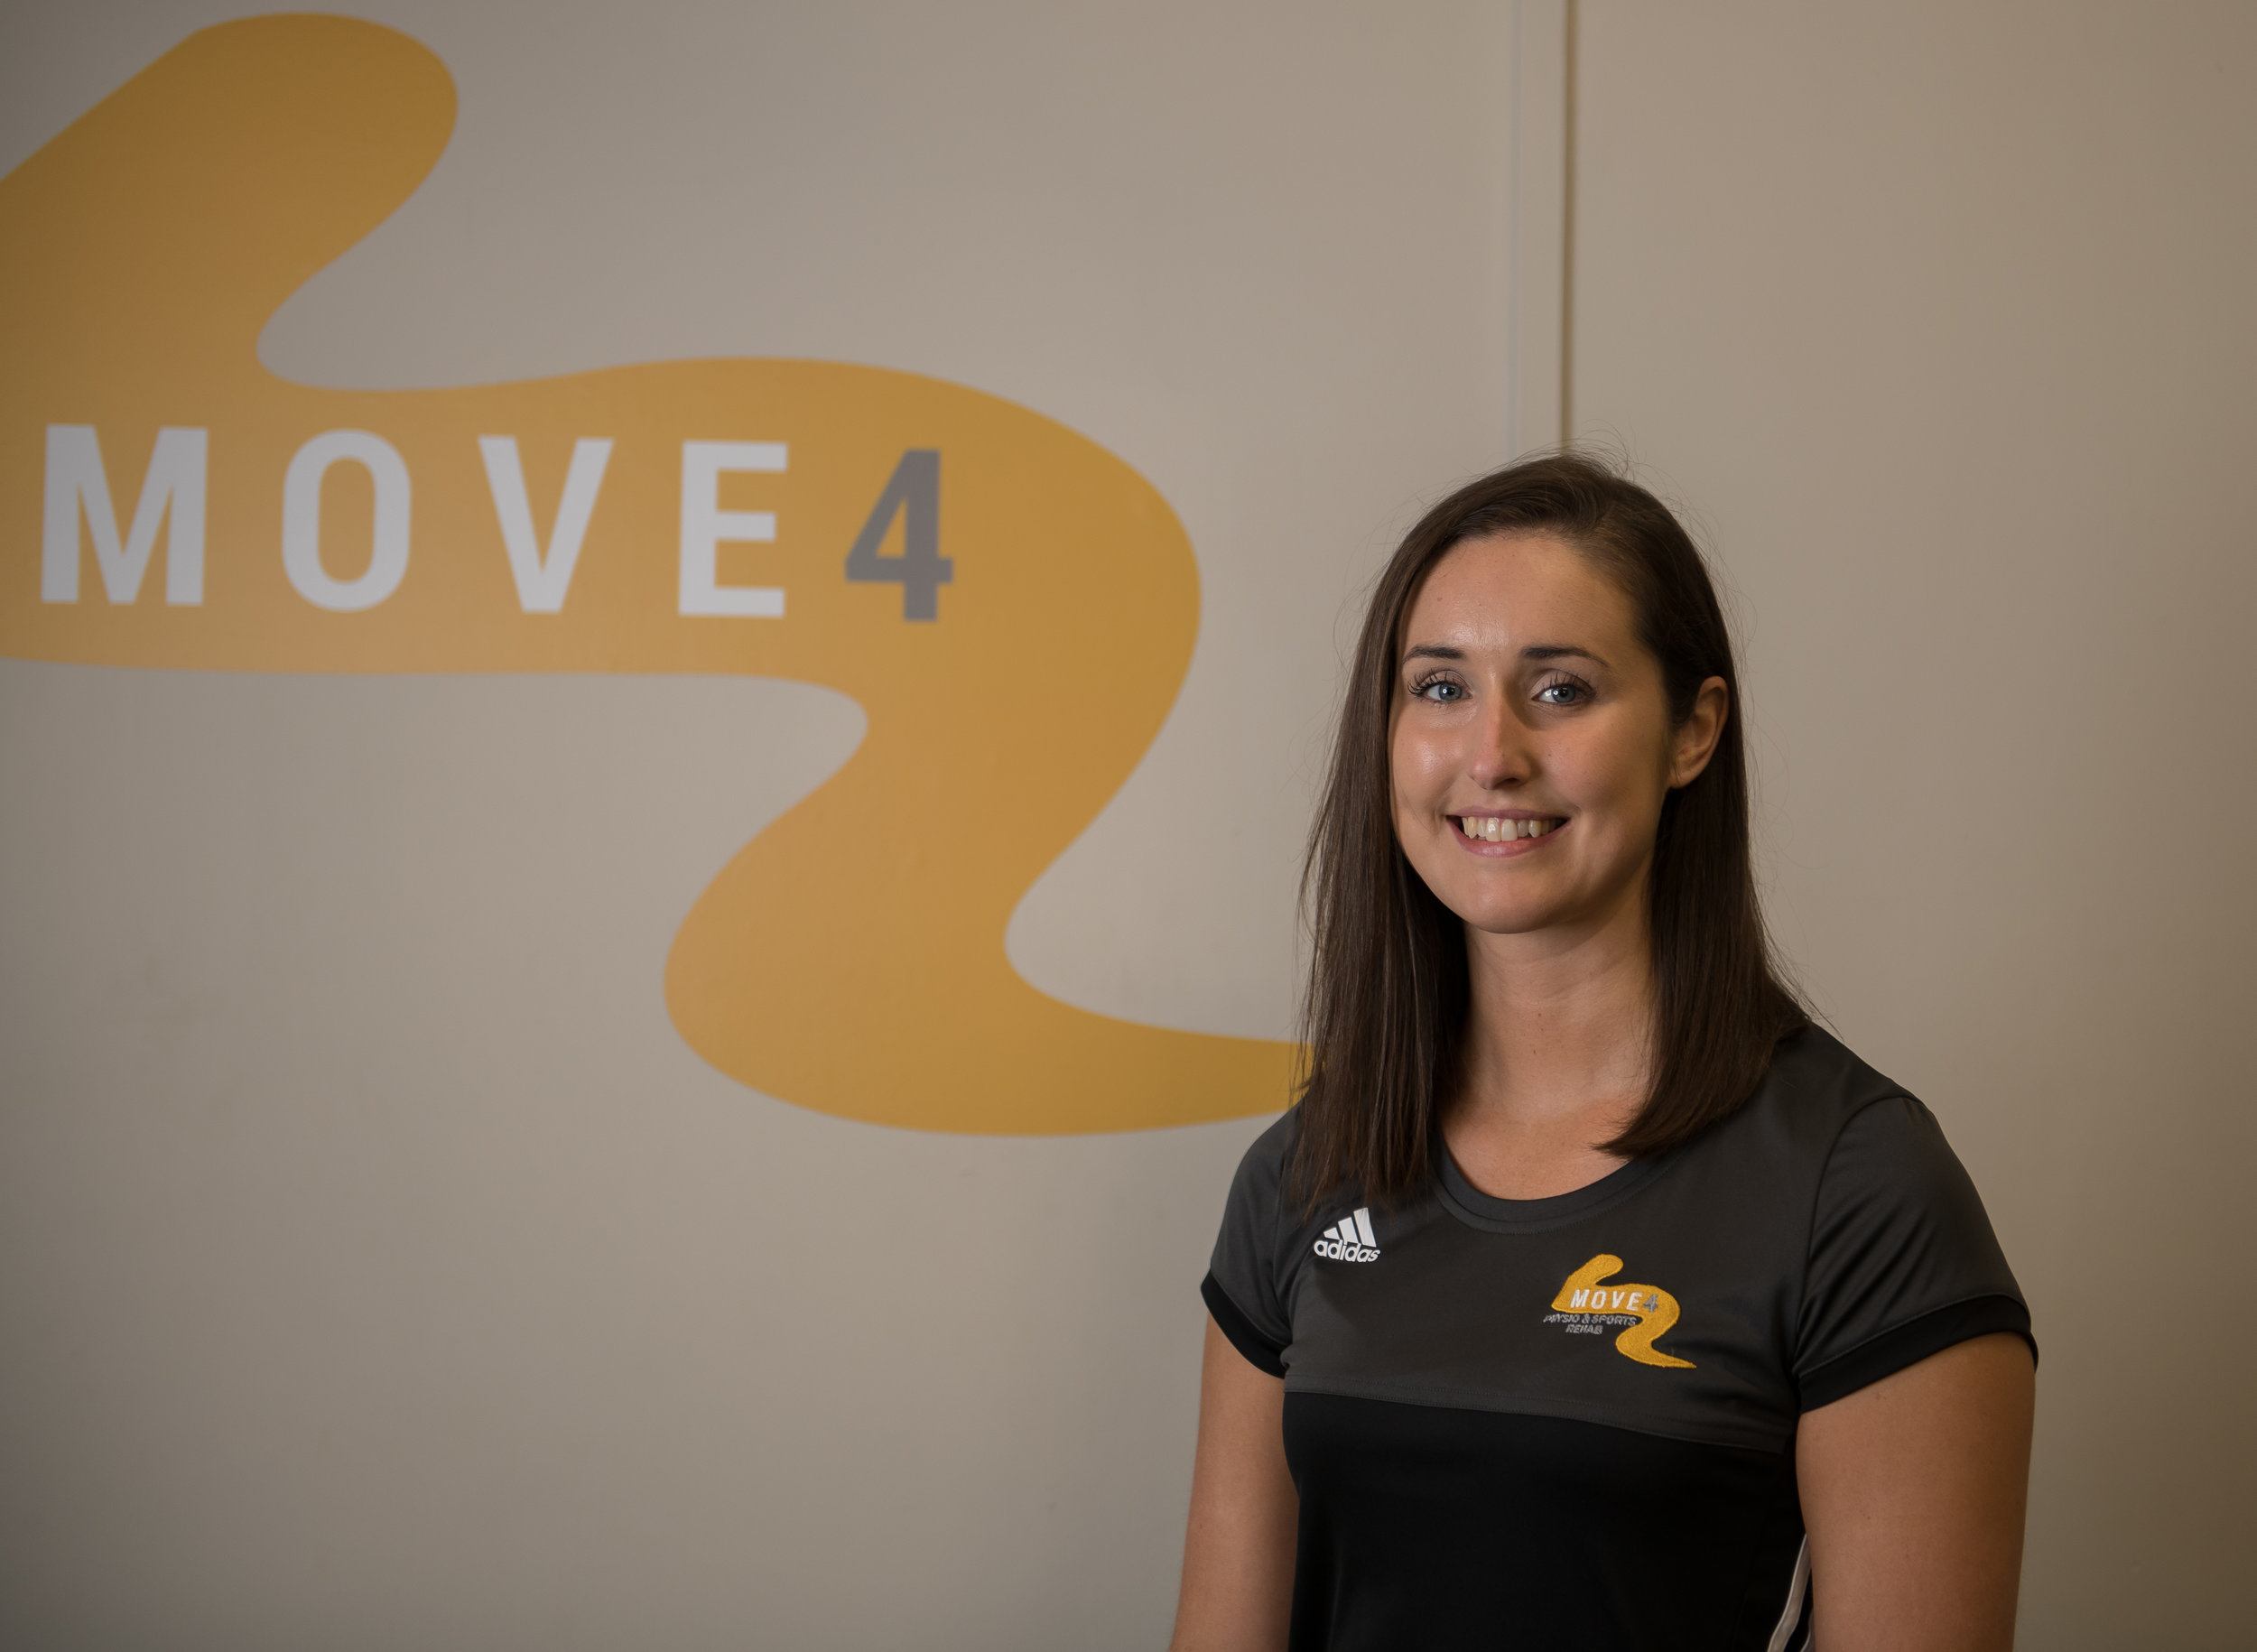 Kiera Ruddy - BSc (Hons) MSSTSports Therapist at Northampton Saints RFCGraduate in Sports Therapy (Uni. of Hertfordshire)Trained in Pilates at Australian Physiotherapy and Pilates Institute